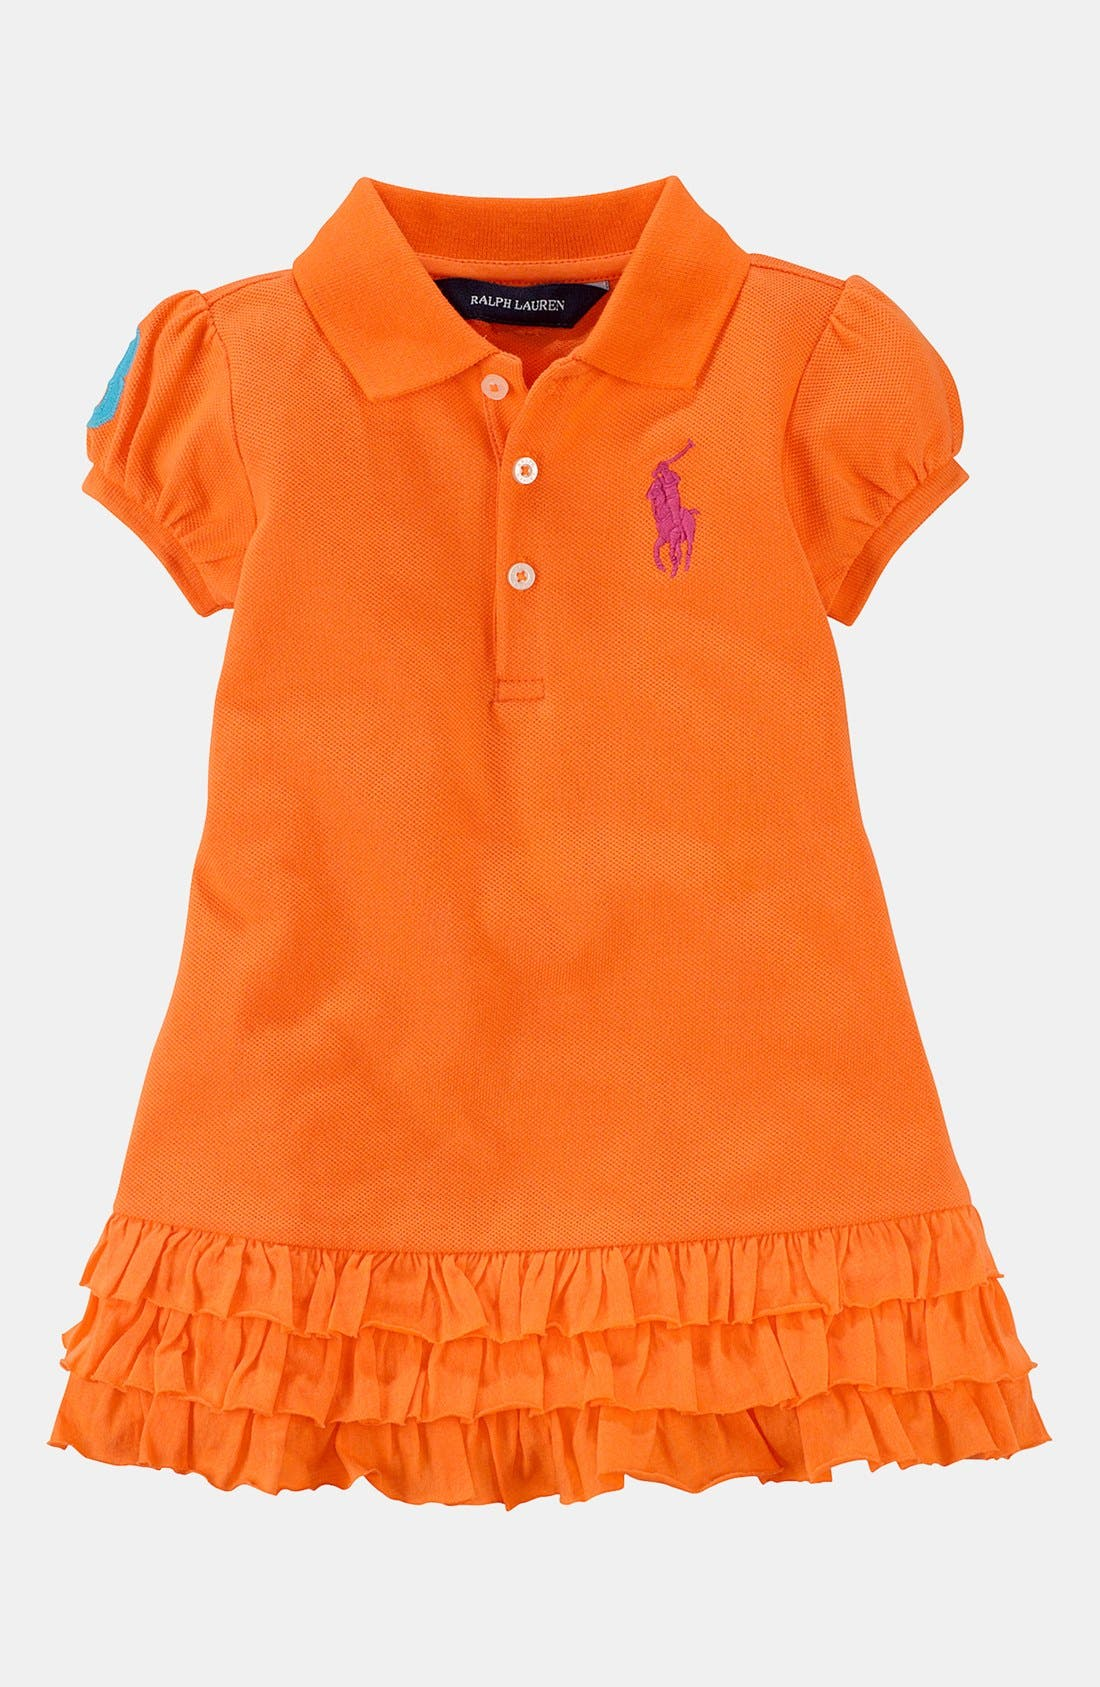 Main Image - Ralph Lauren Polo Dress & Bloomers (Baby)